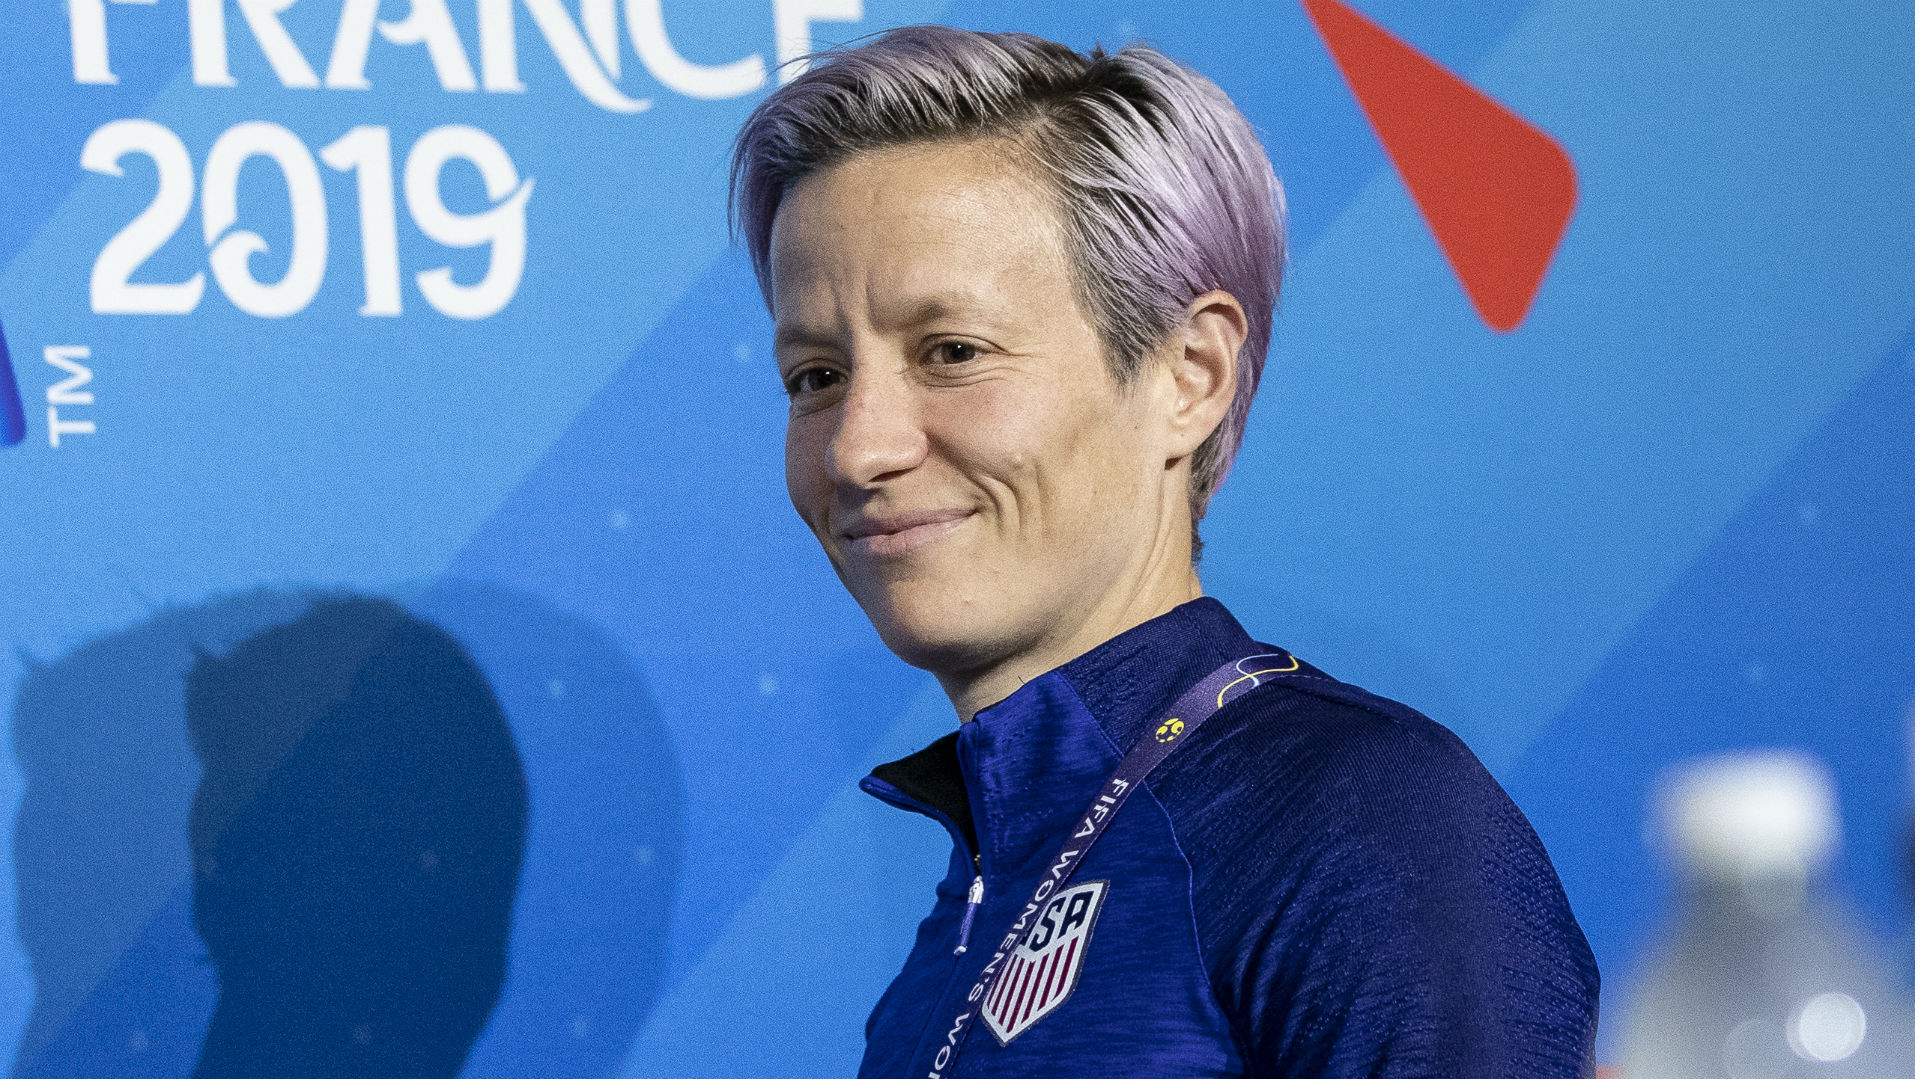 Women's World Cup 2019: Megan Rapinoe takes aim at FIFA over prize money gap, finals scheduling